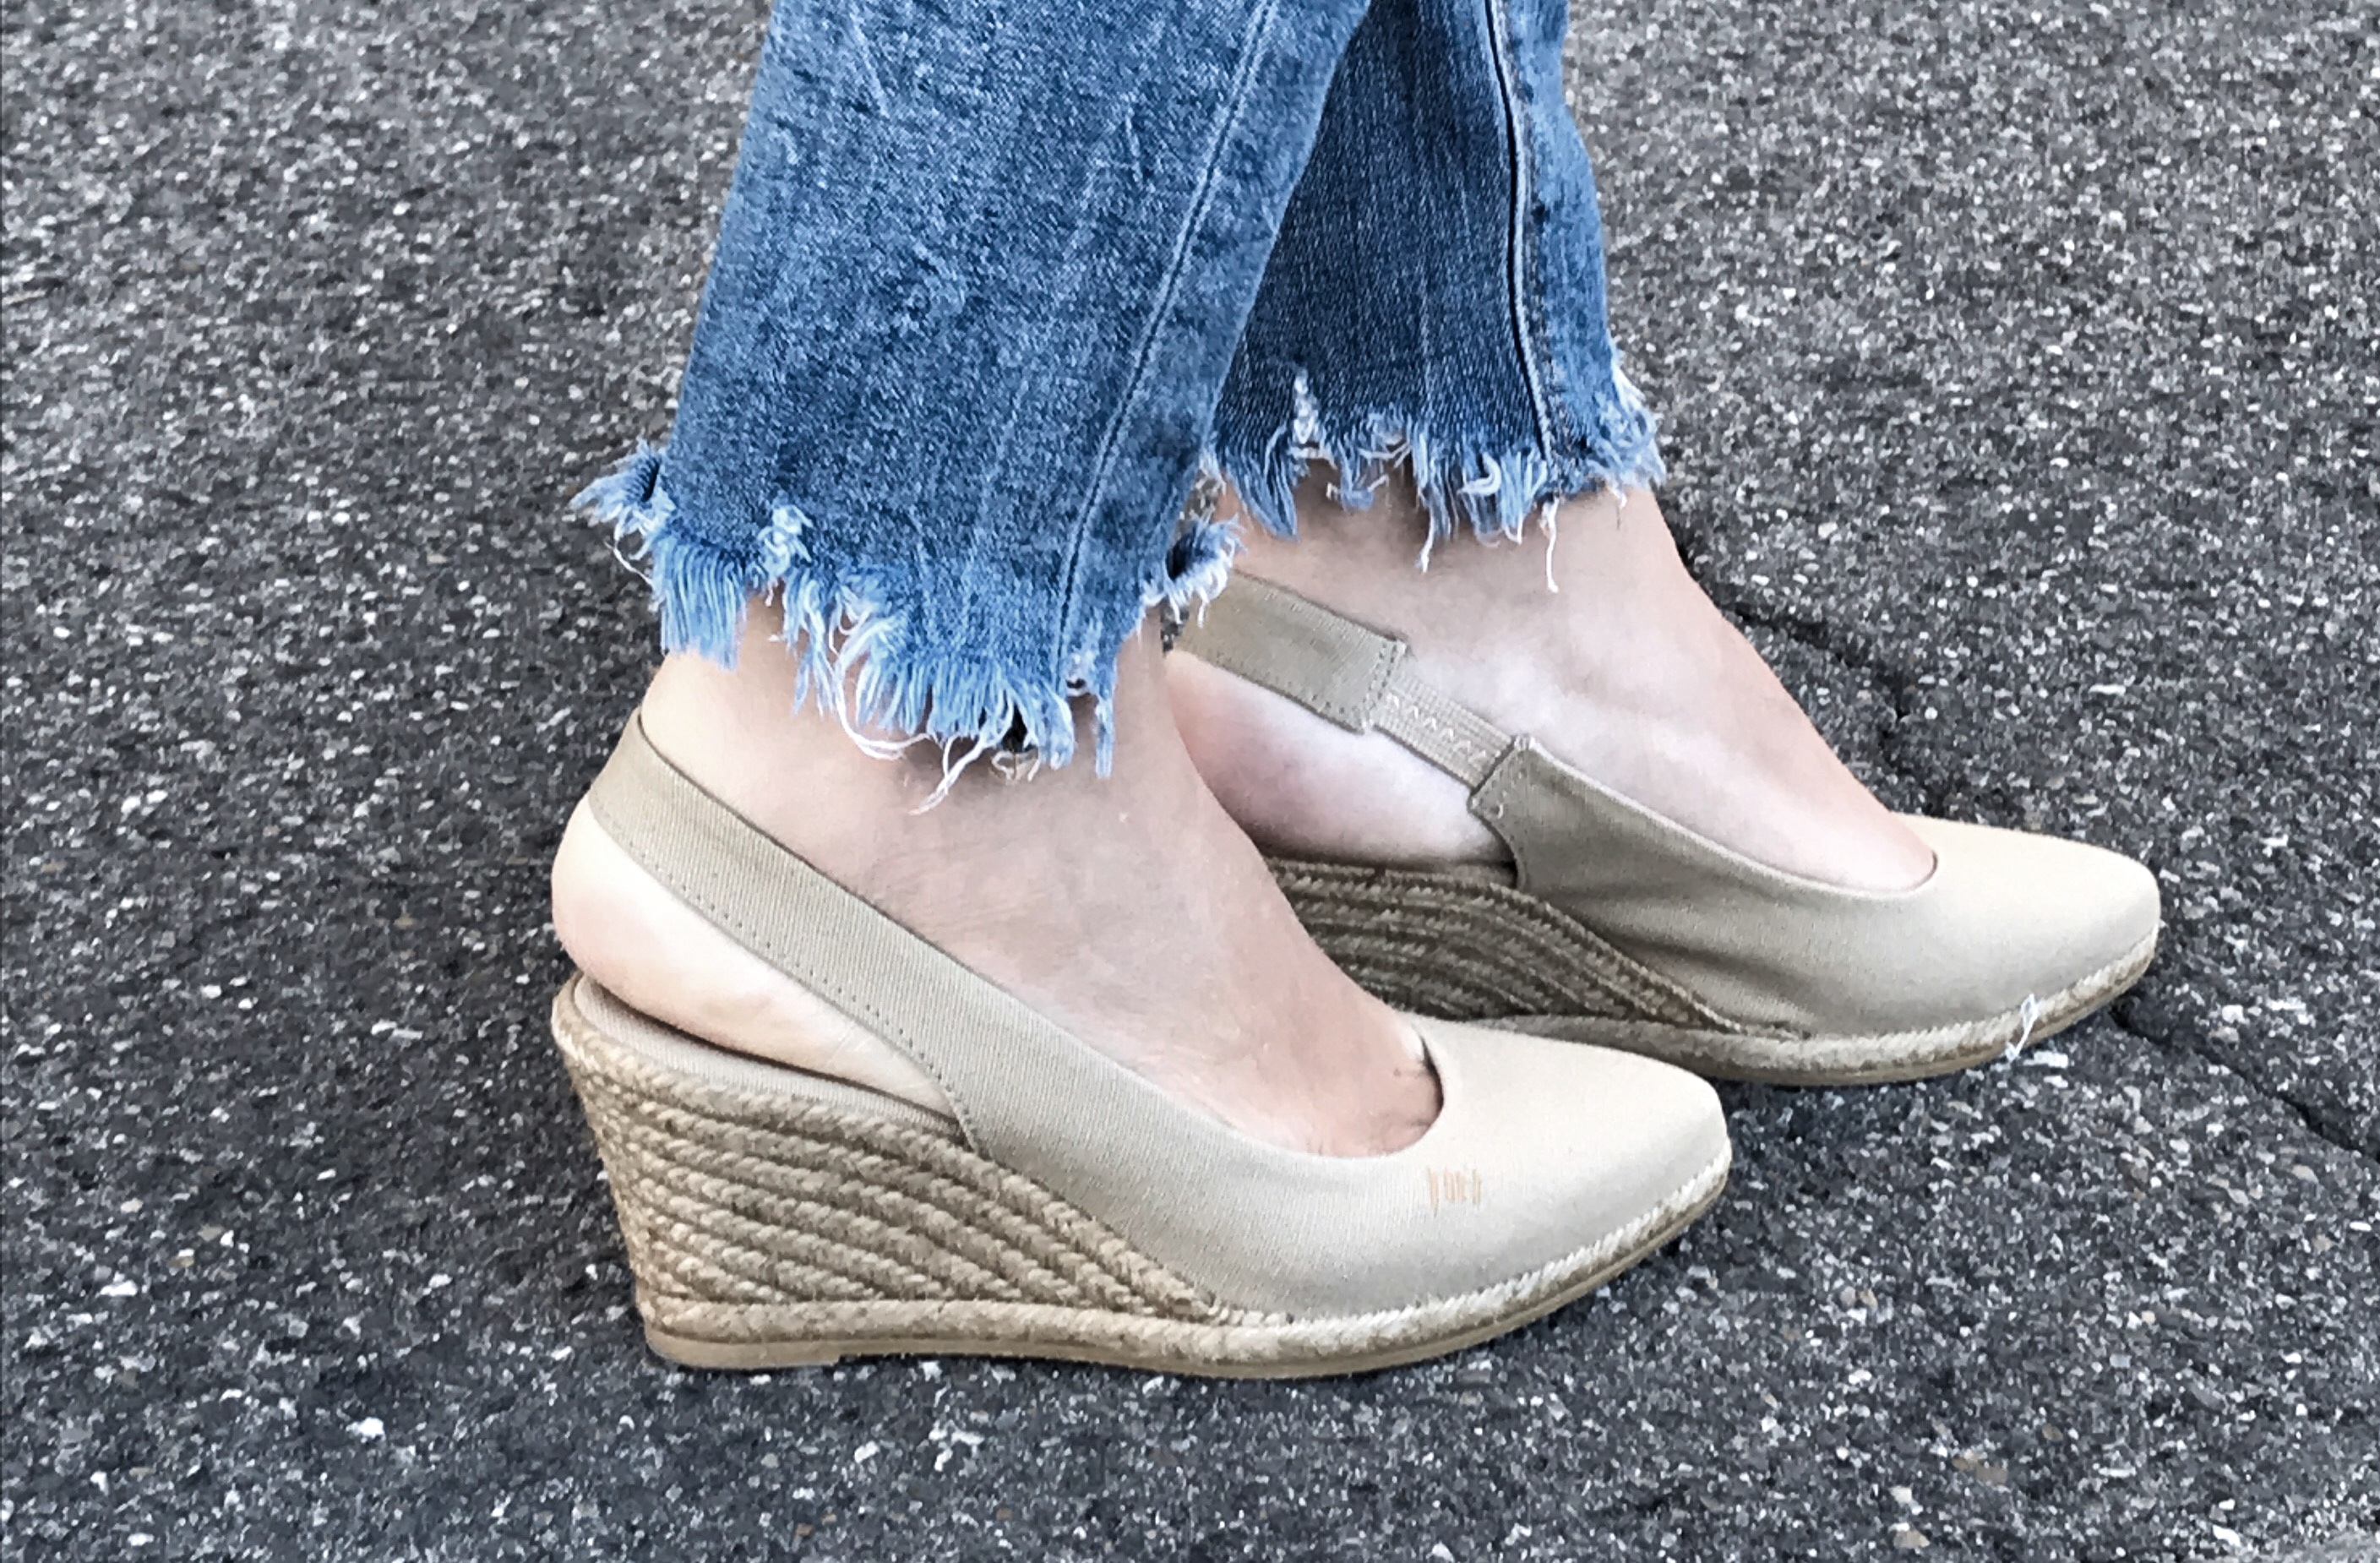 Viscata shoes espadrilles